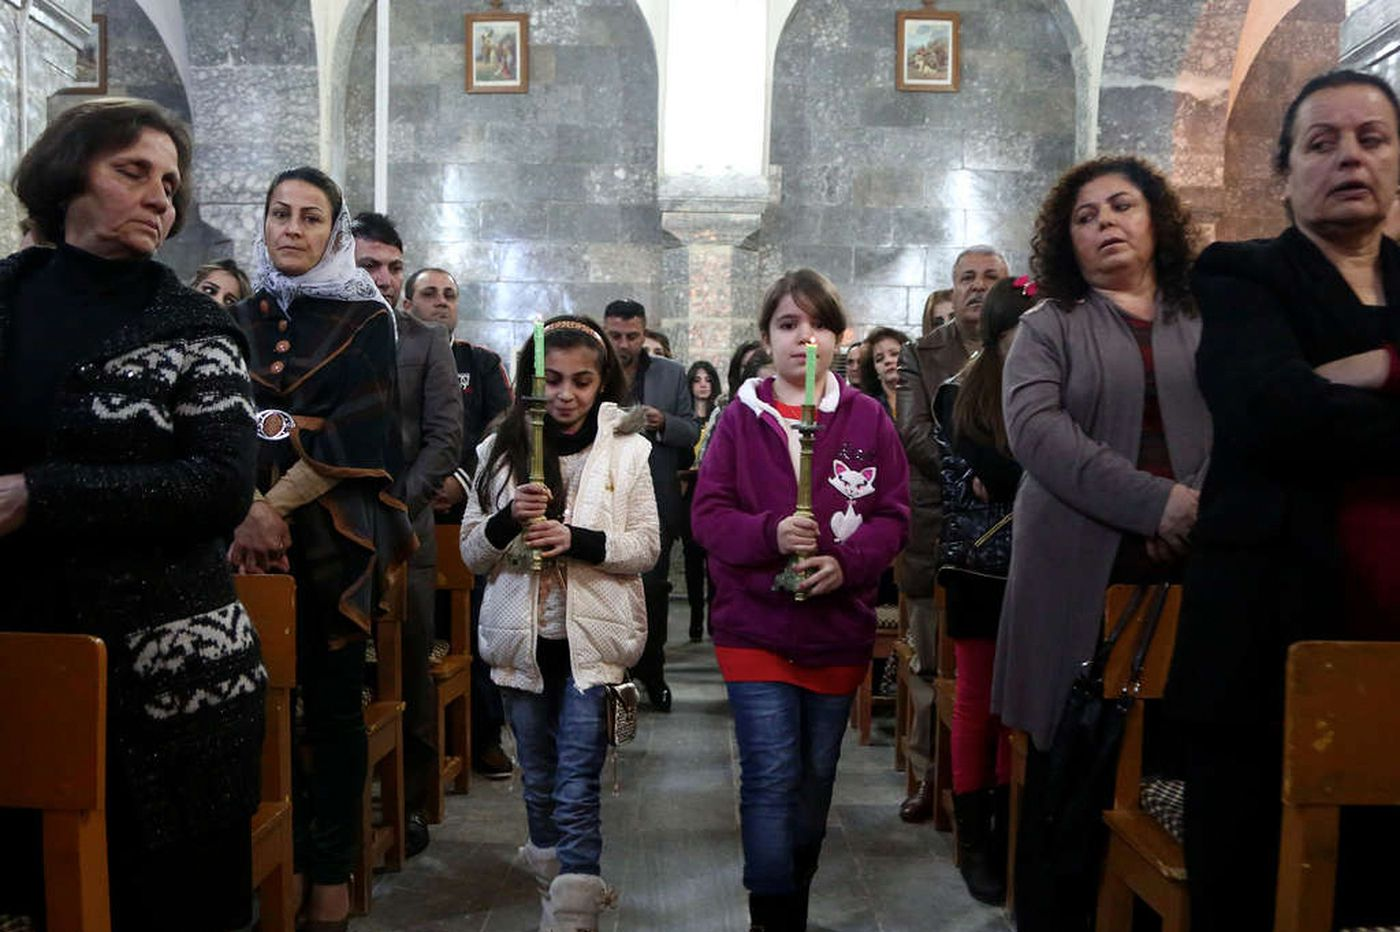 Worldview: Why U.S. bears responsibility for beleaguered Christians in Iraq